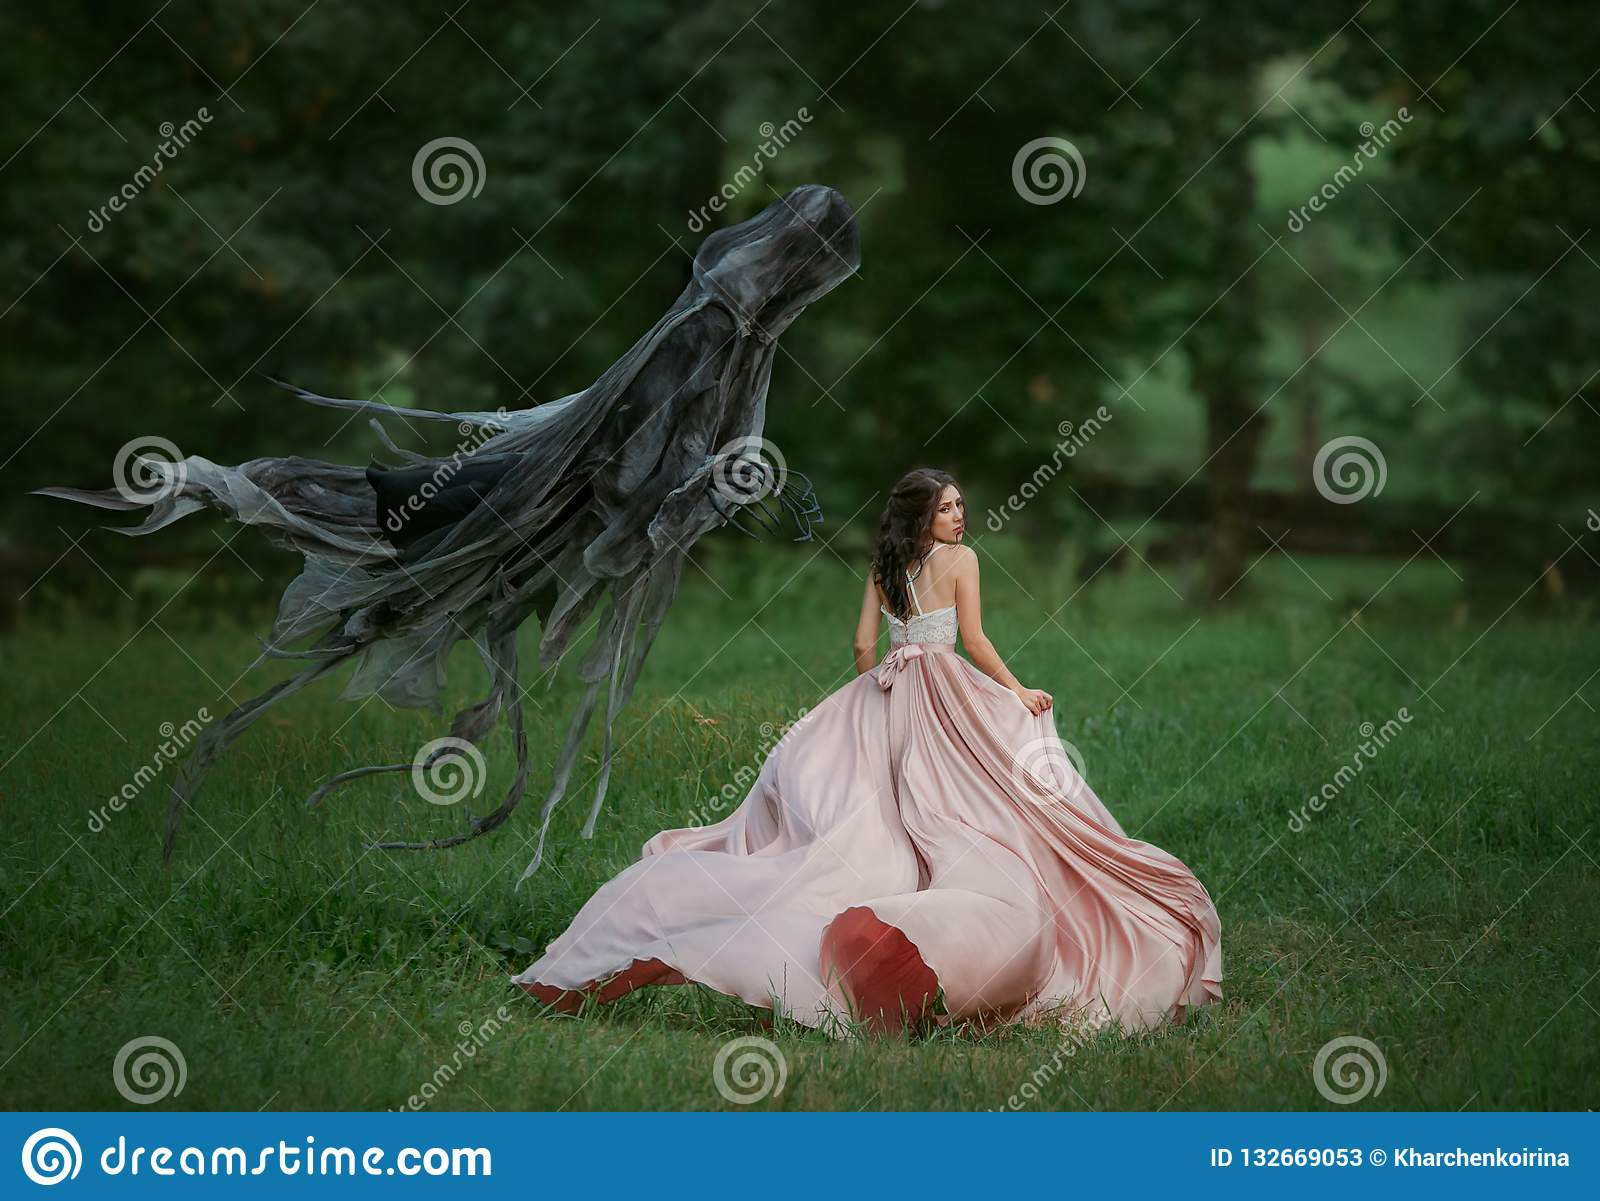 Brunette girl in a panic runs away from death. Dark evil curse haunting woman. Enchanted princess in a luxurious, flying